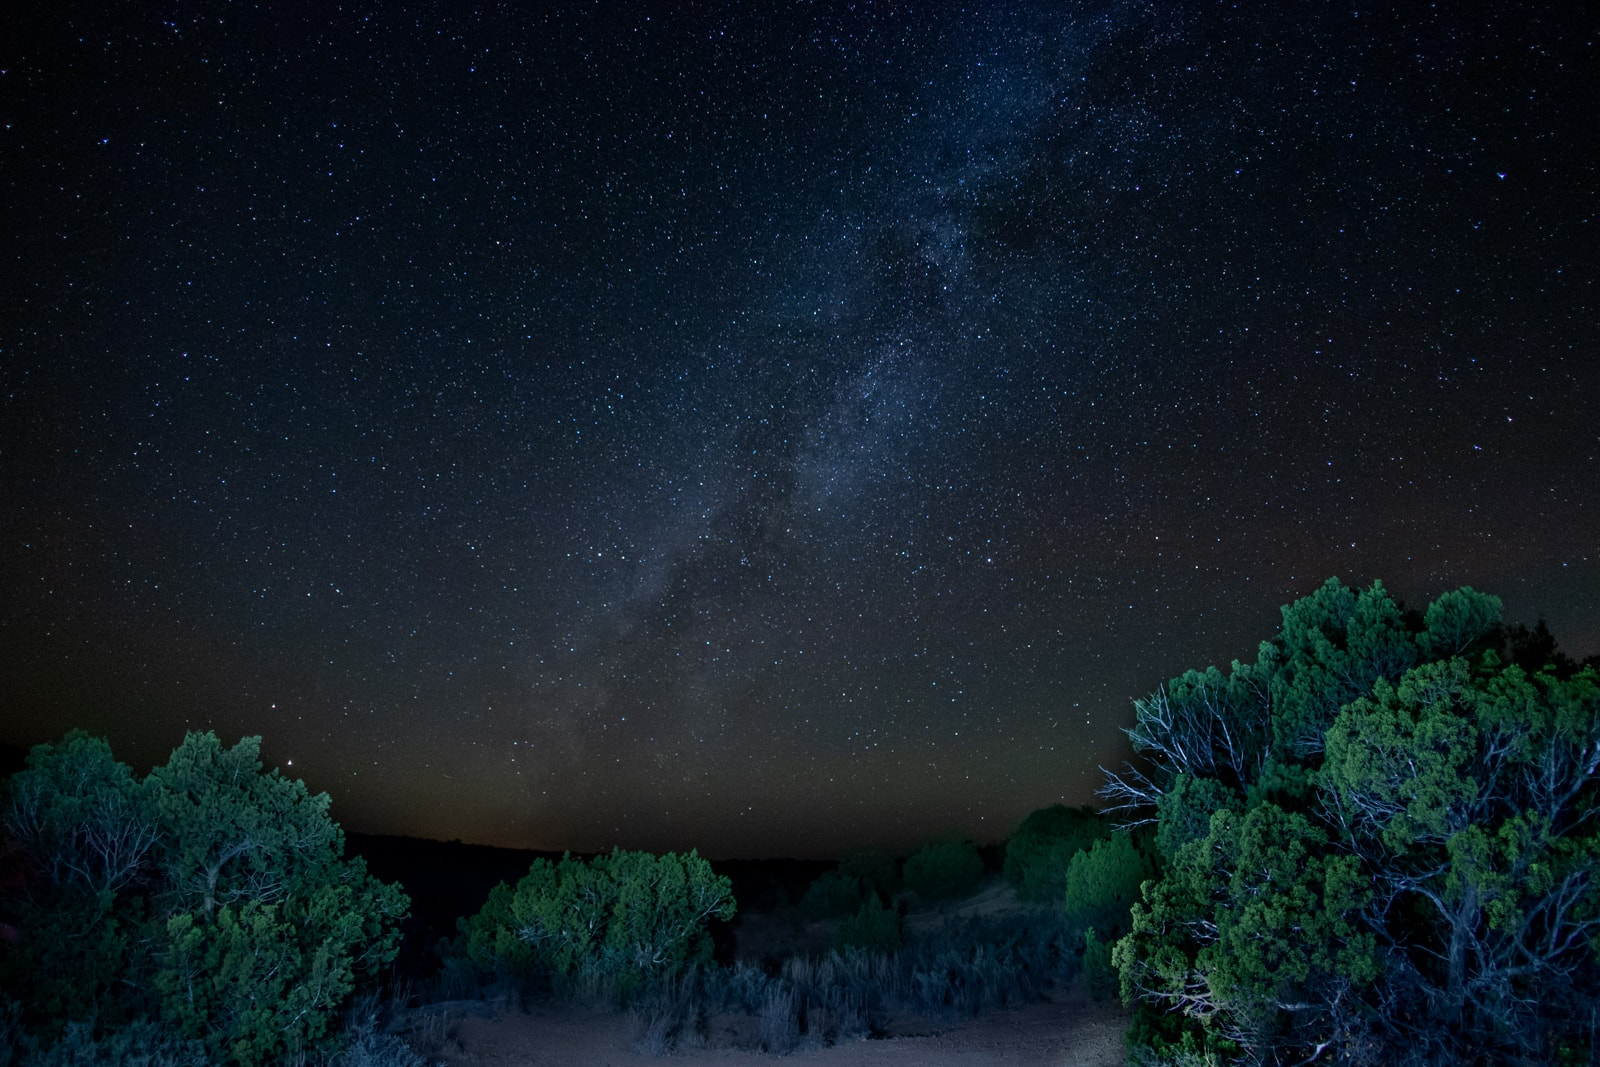 The Milky Way Galaxy seen from Copper Breaks State Park in Texas